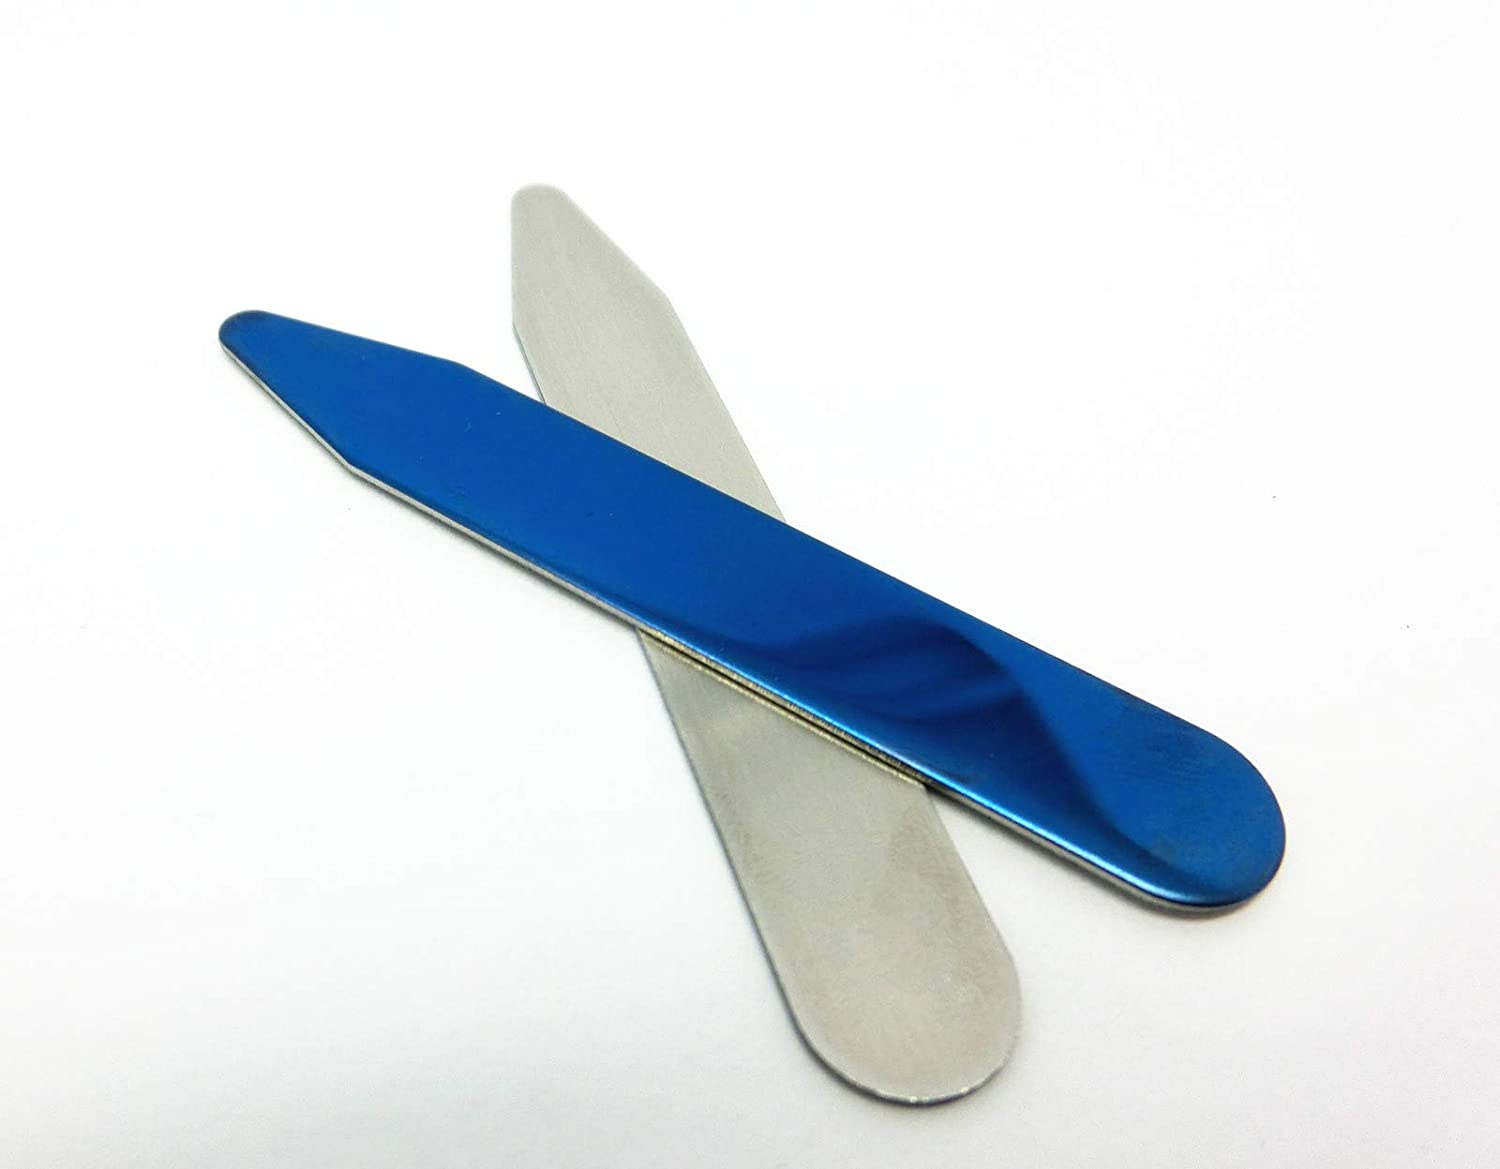 Double Sided Design DG-blue-20pcs Shang Zun 20 Pcs Blue Stainless Steel Collar Stays in Clear Box